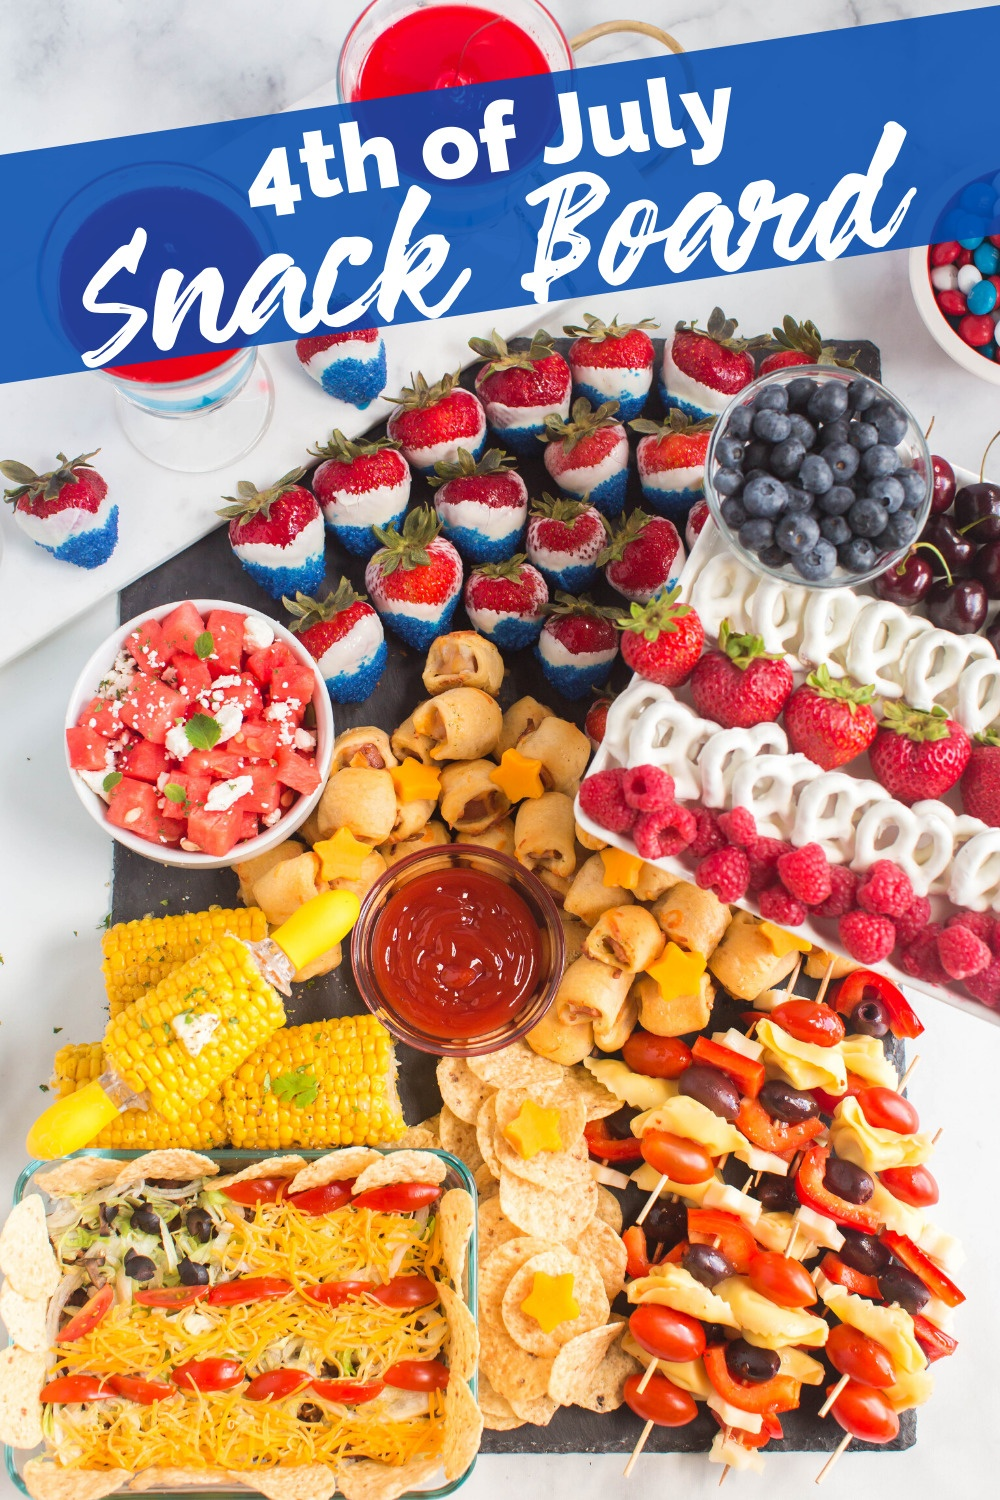 4th of July Snack board appetizer via @familyfresh